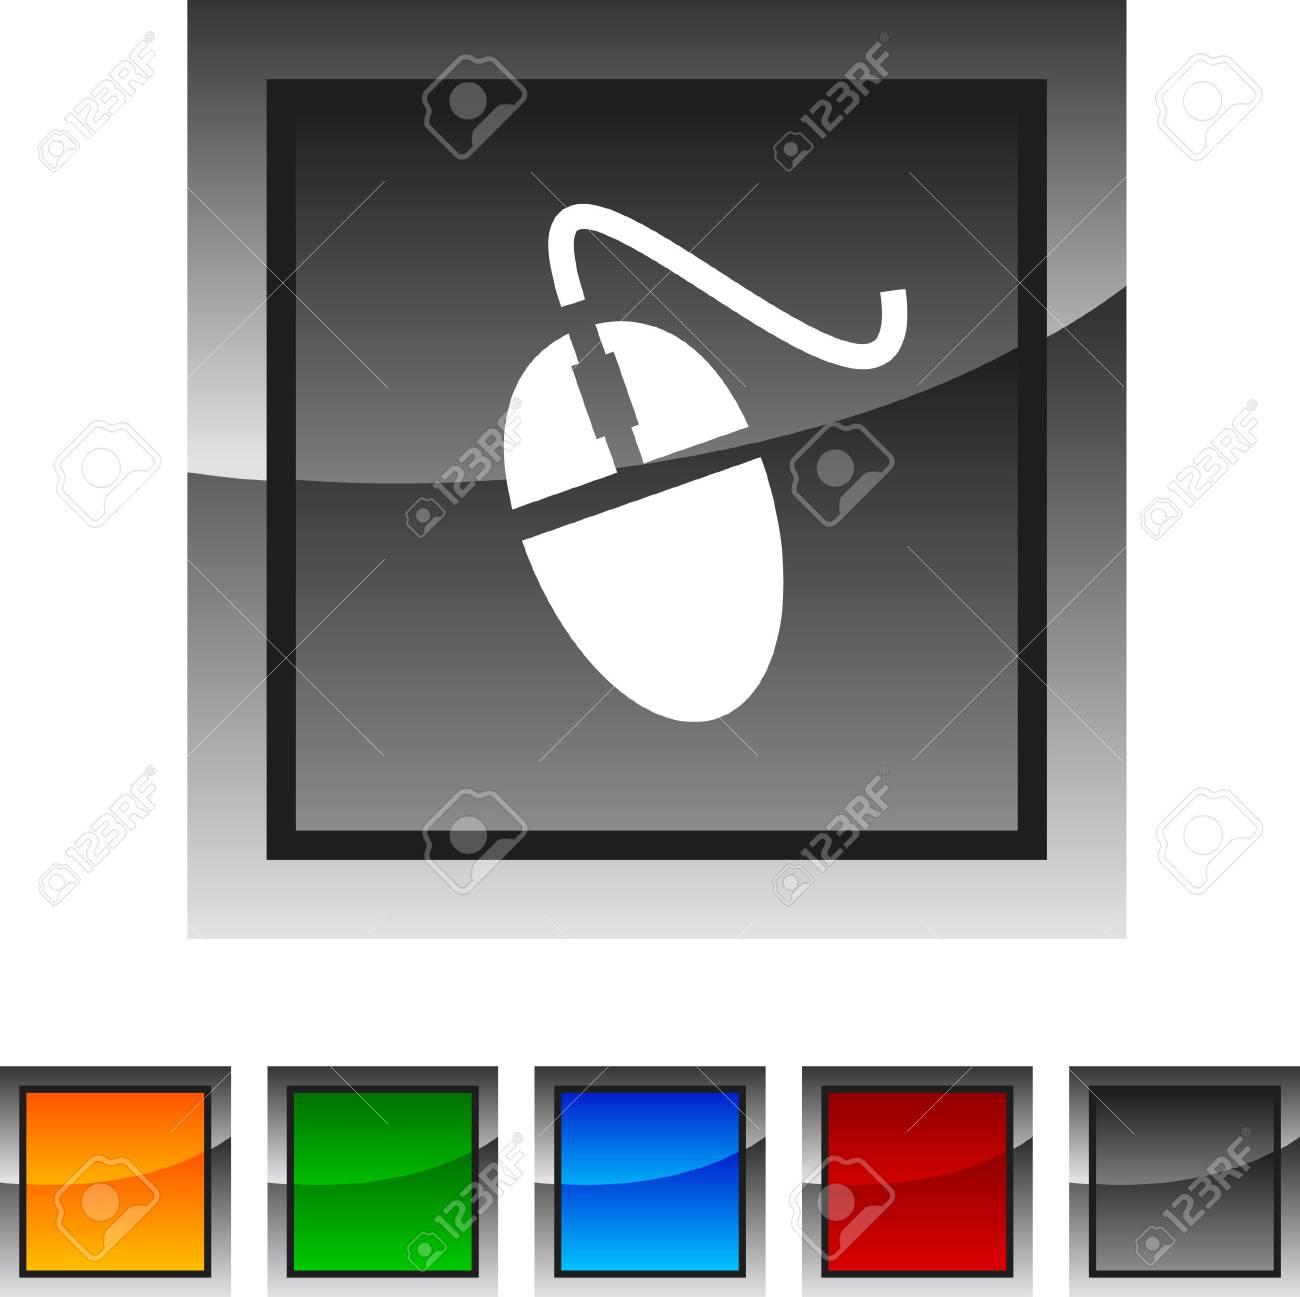 Mouse icon set. Vector illustration. Stock Vector - 5822954